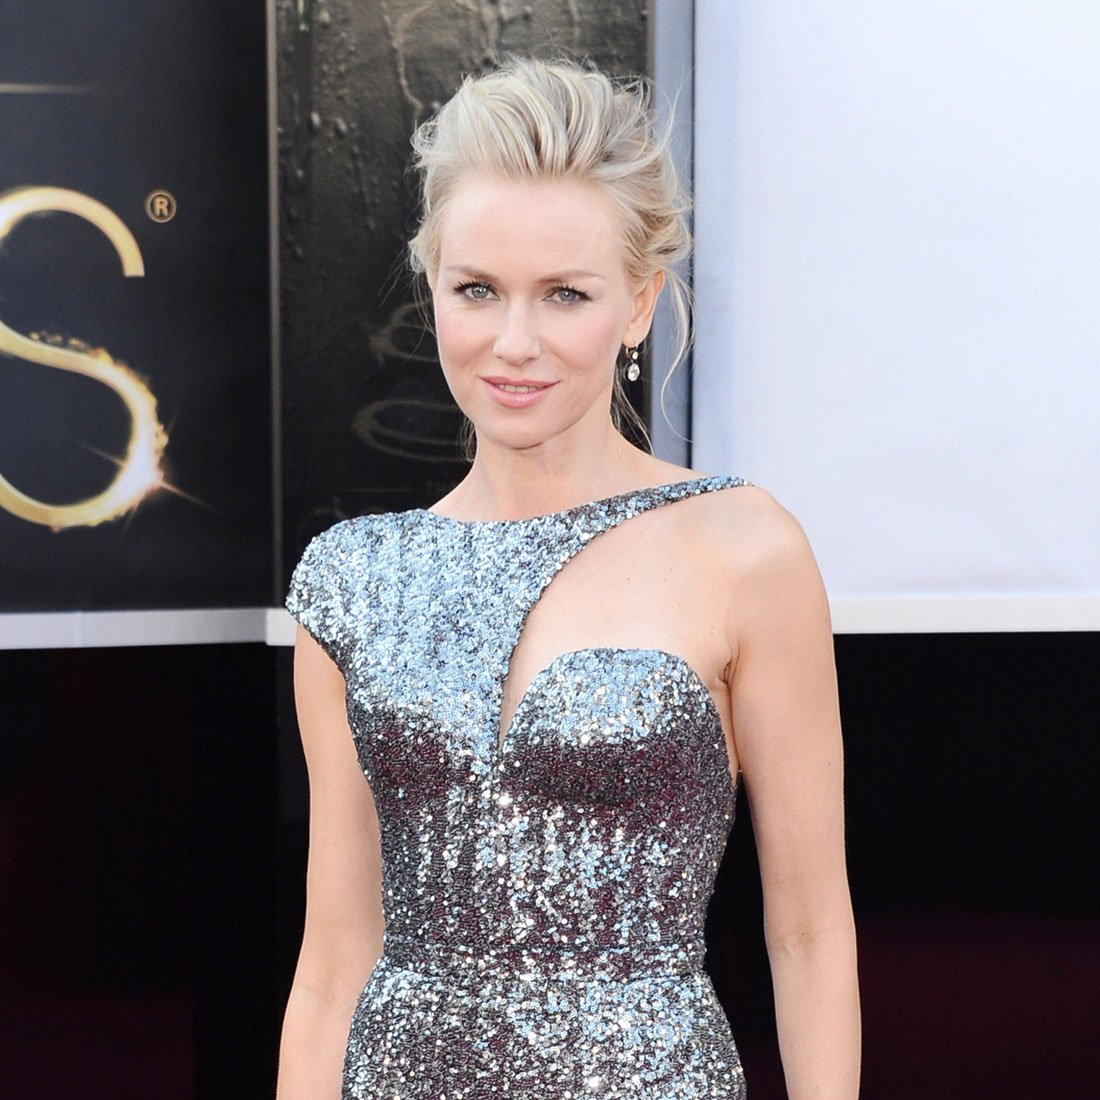 61 Hot And Sexy Pictures of Naomi Watts Will Make You Fall In Love With Her | Best Of Comic Books